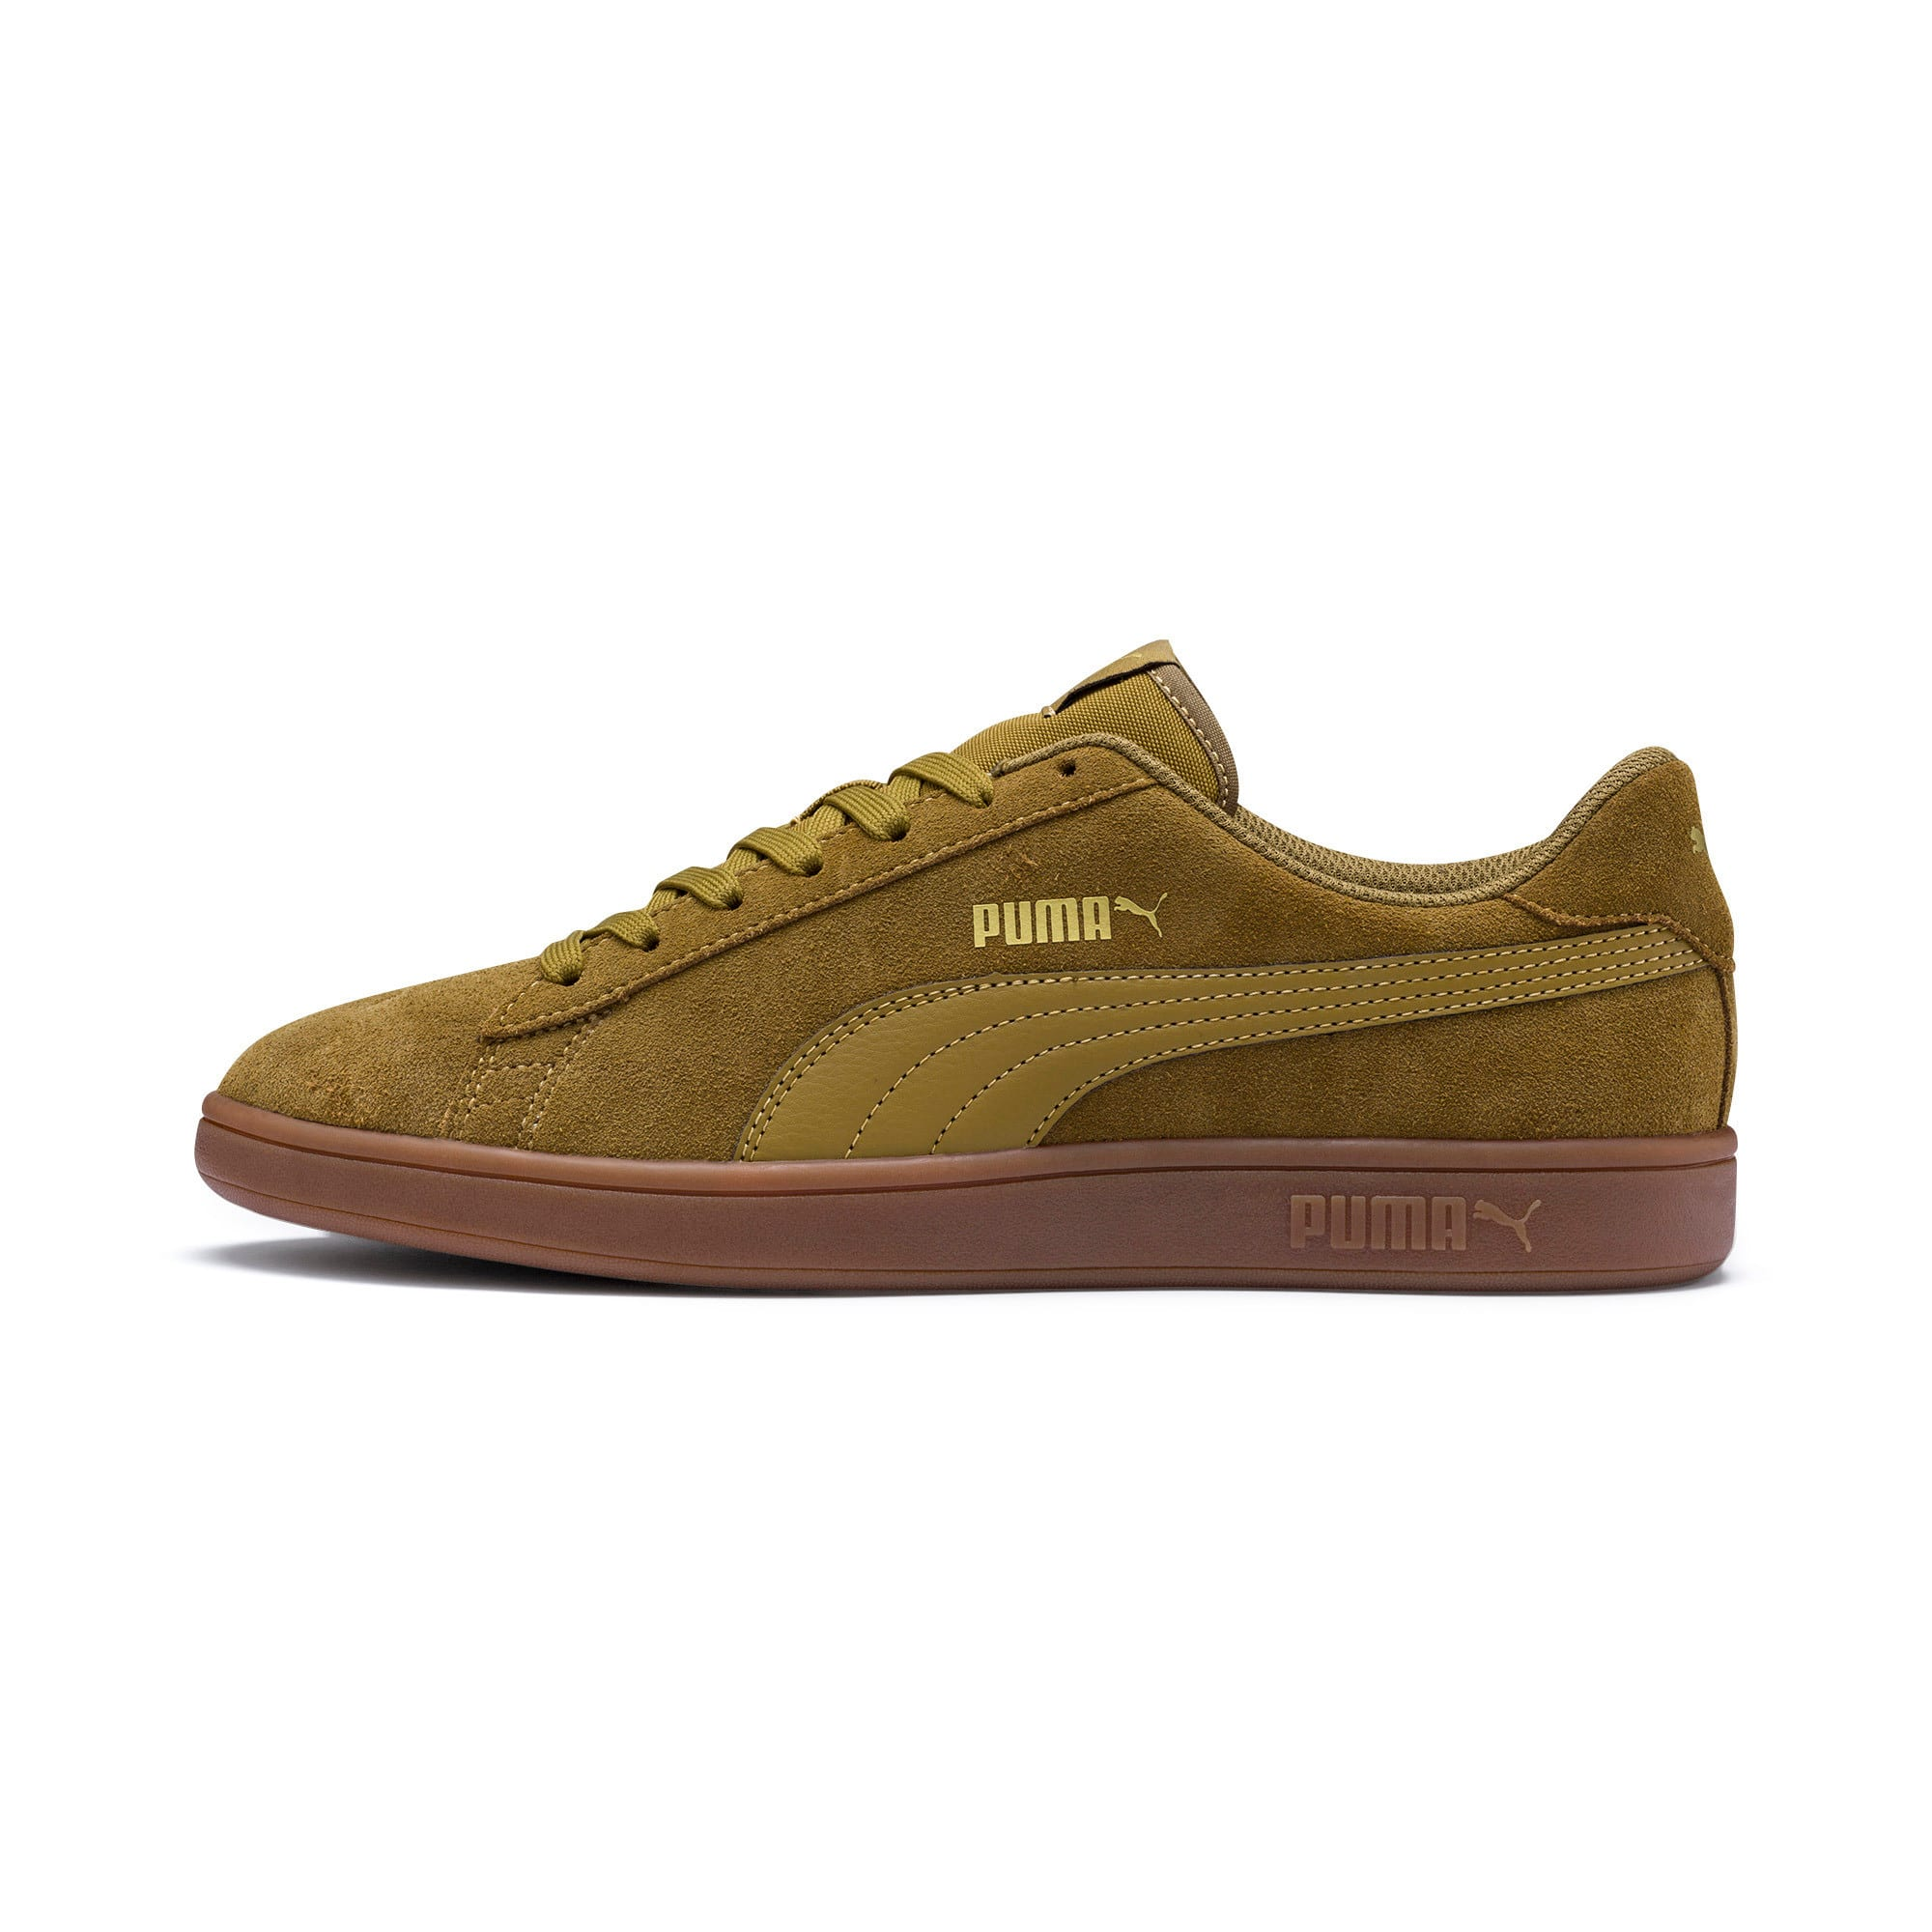 Thumbnail 1 of PUMA Smash v2 Sneakers, Moss Green-Team Gold-Gum, medium